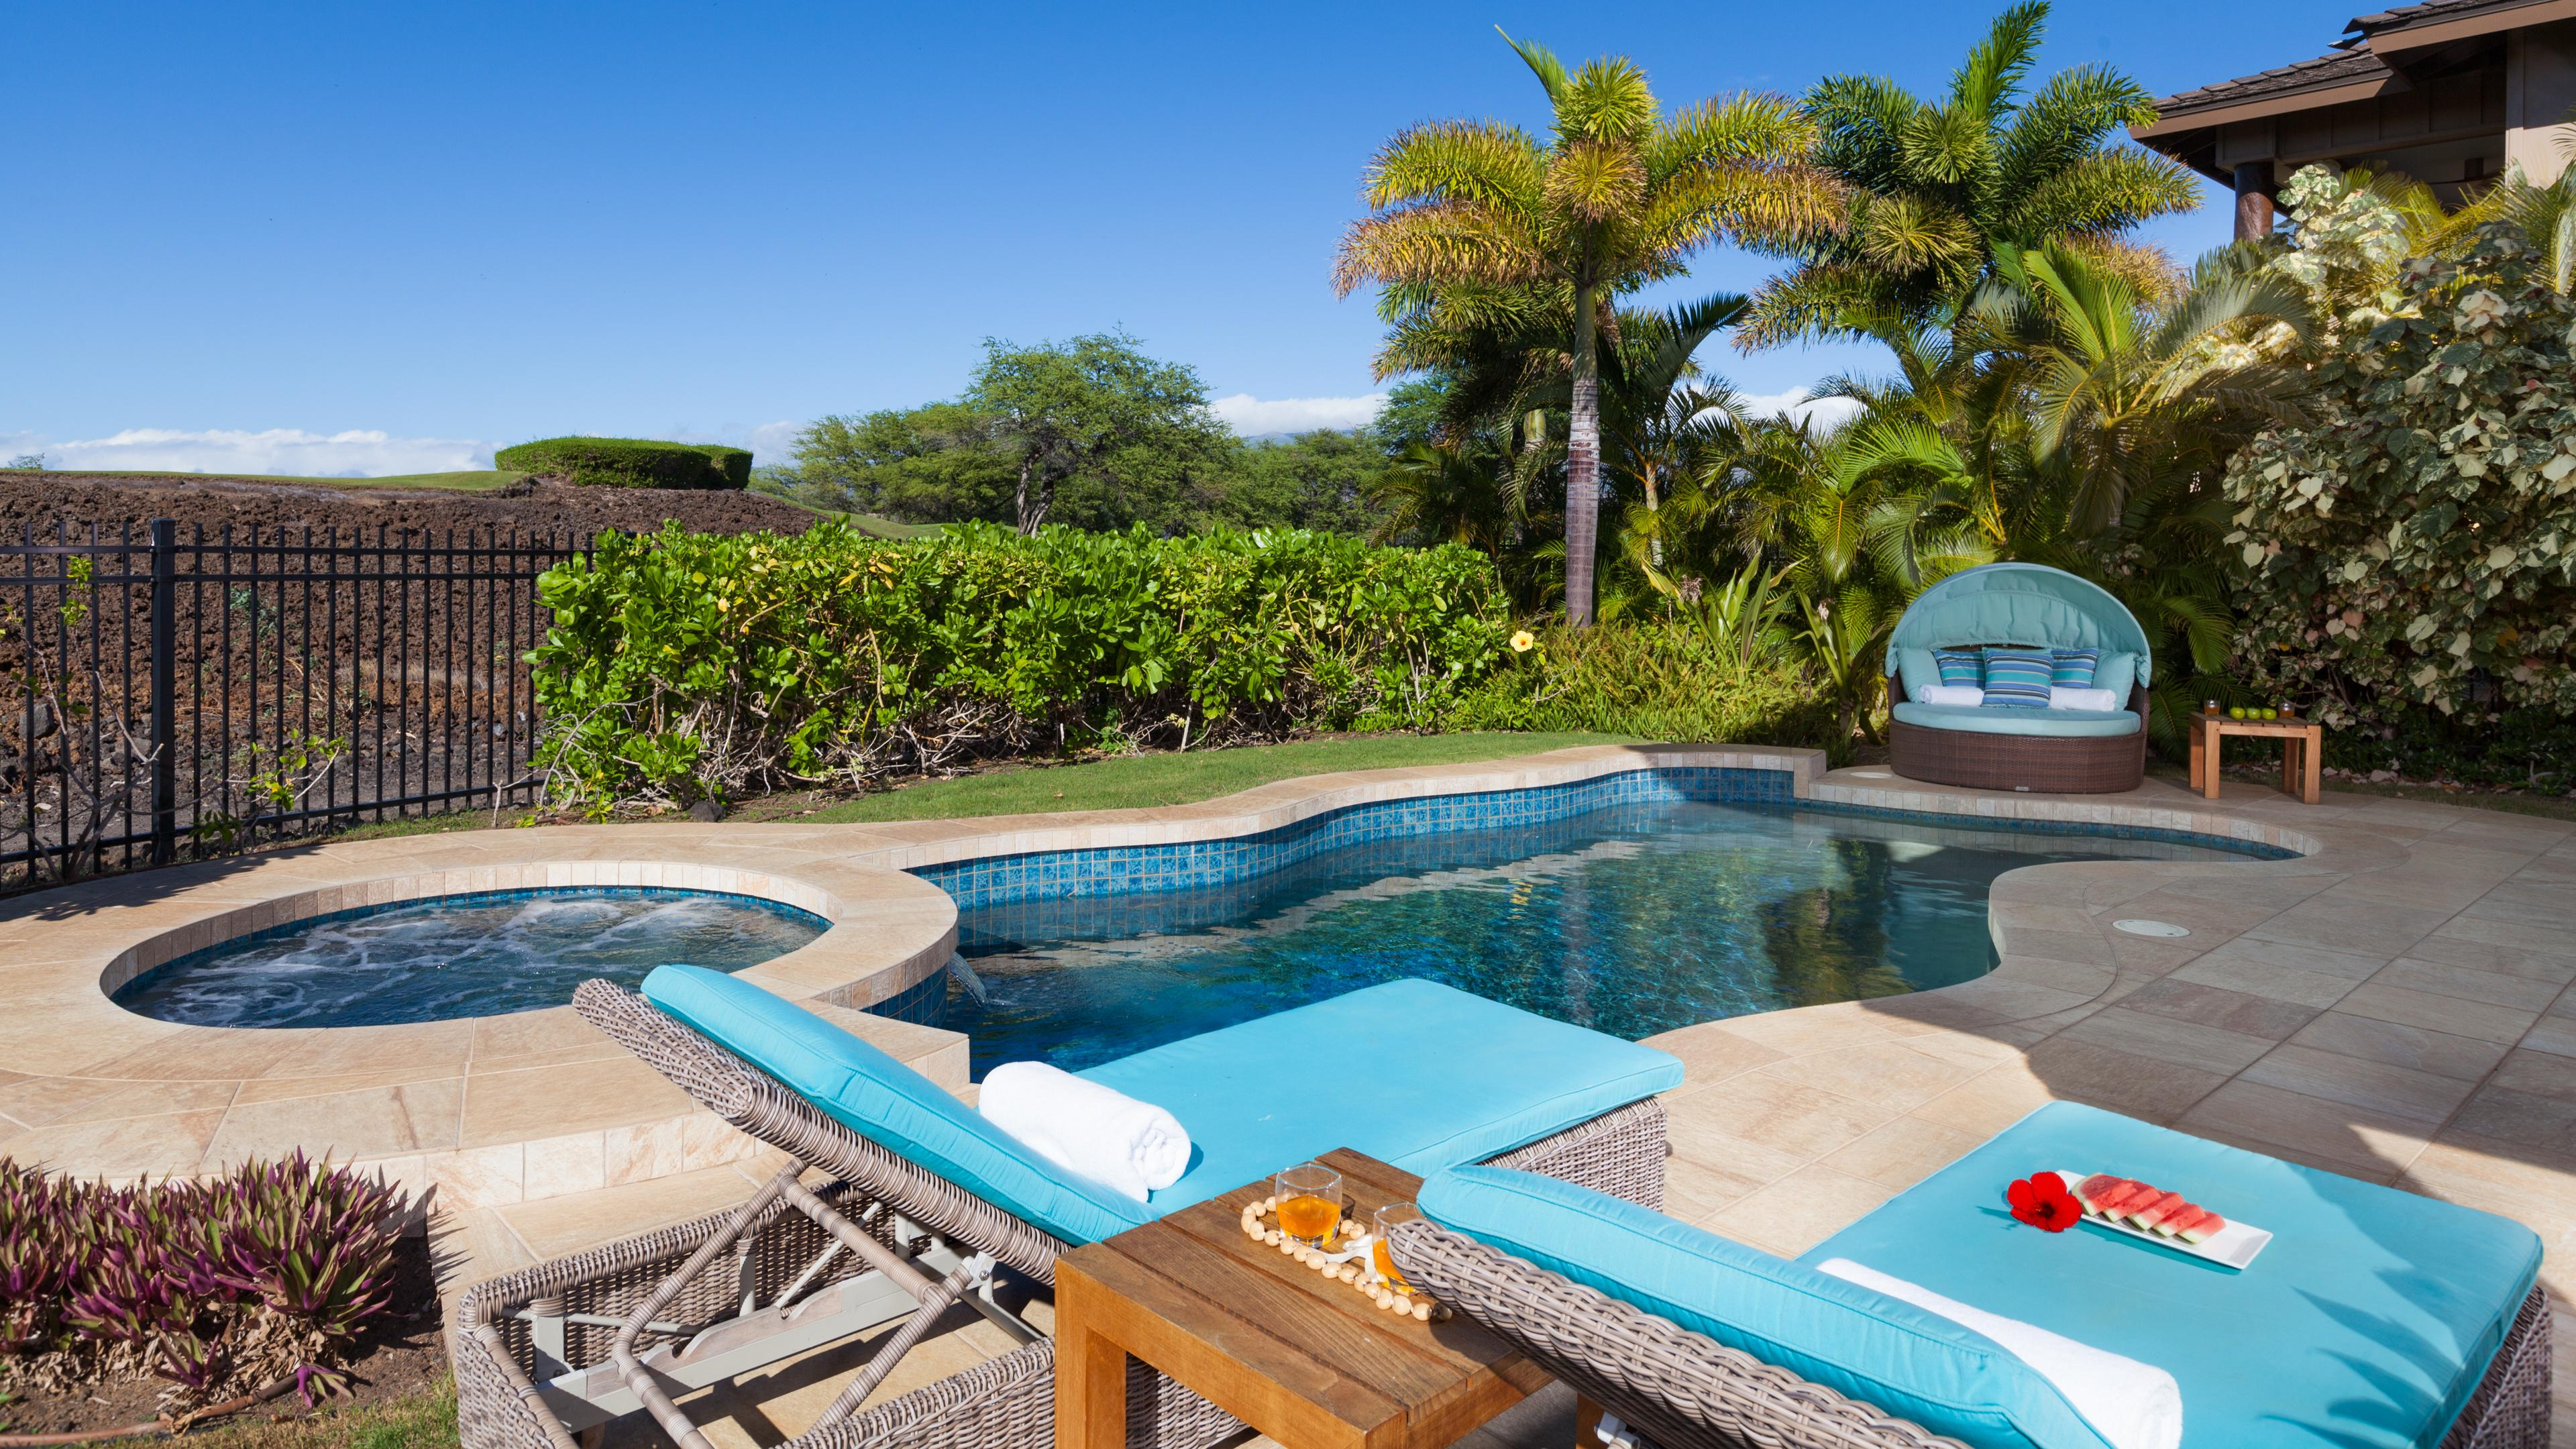 Your backyard Oasis - heated pool and spa